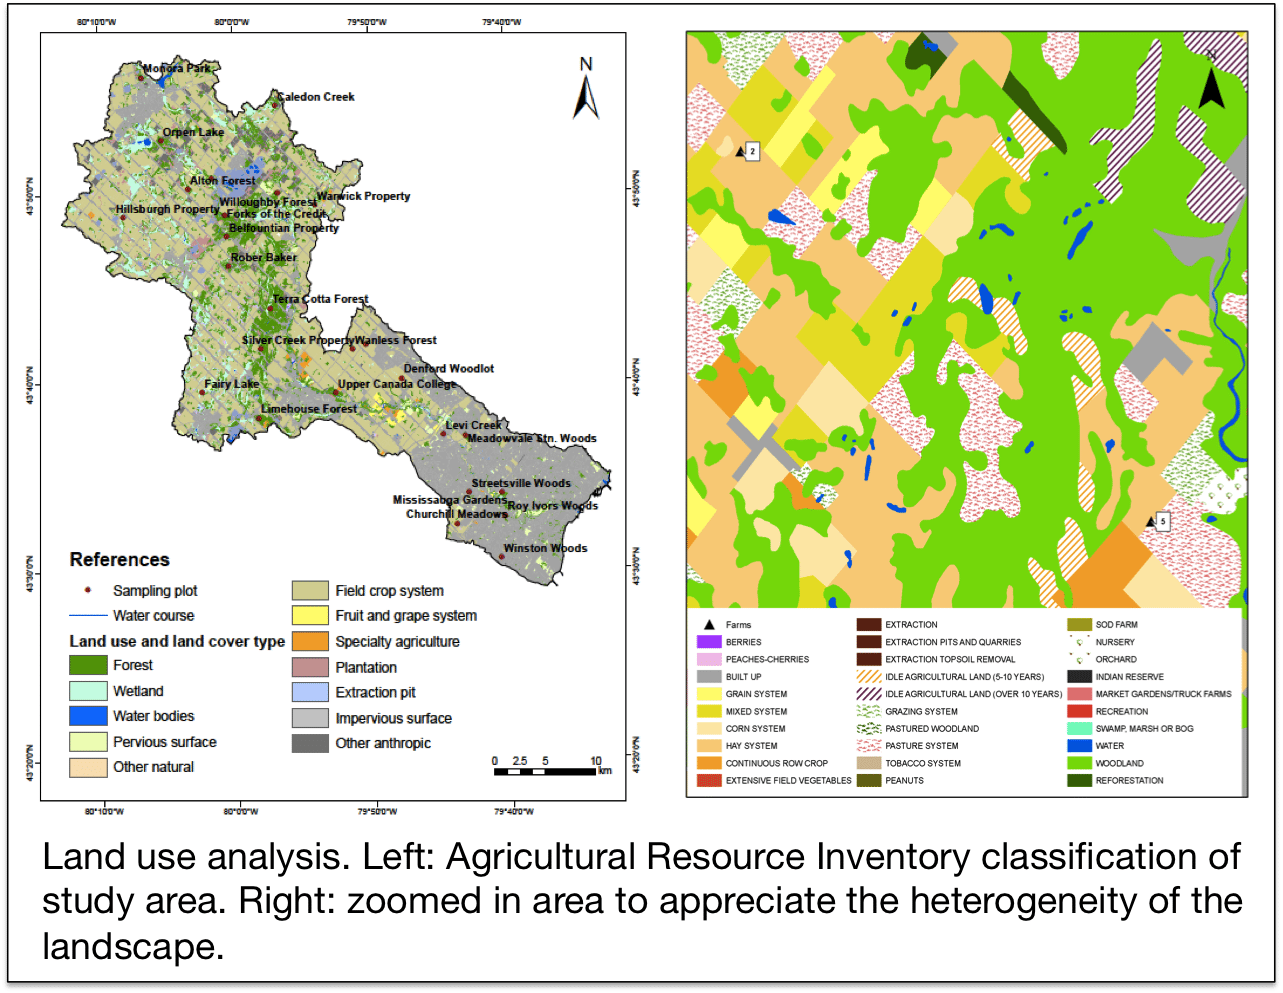 Figure showing land use analysis. On the left: Agriculture Resource Inventory classification of study area. On the right: zoomed in area to appreciate the heterogeneity of the landscape.